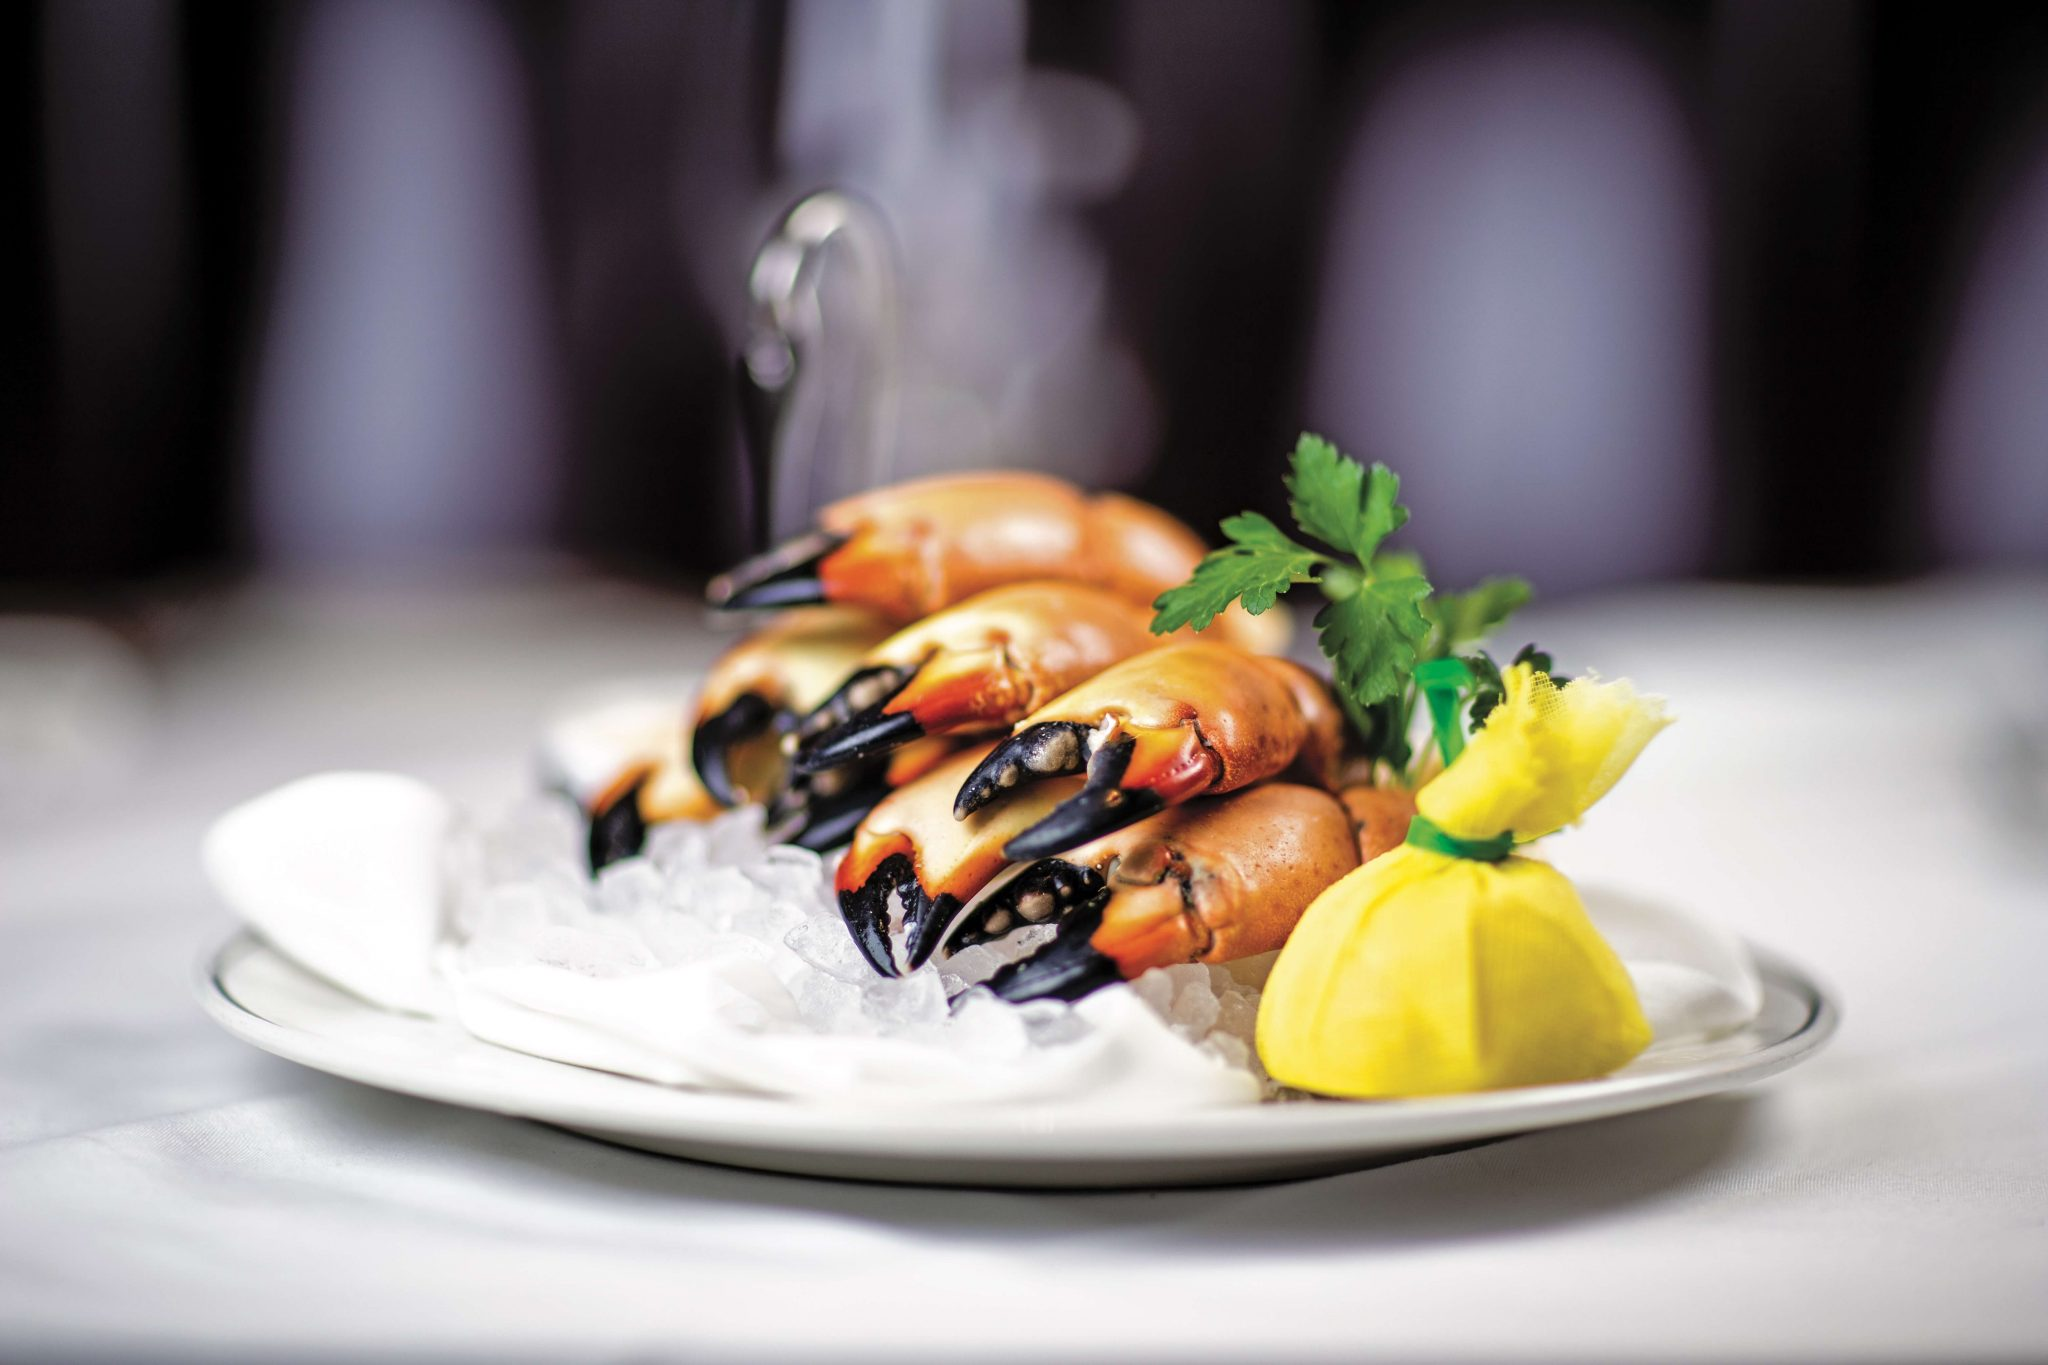 Florida stone crab legs, laying on ice with a fresh lemon ready to squeeze